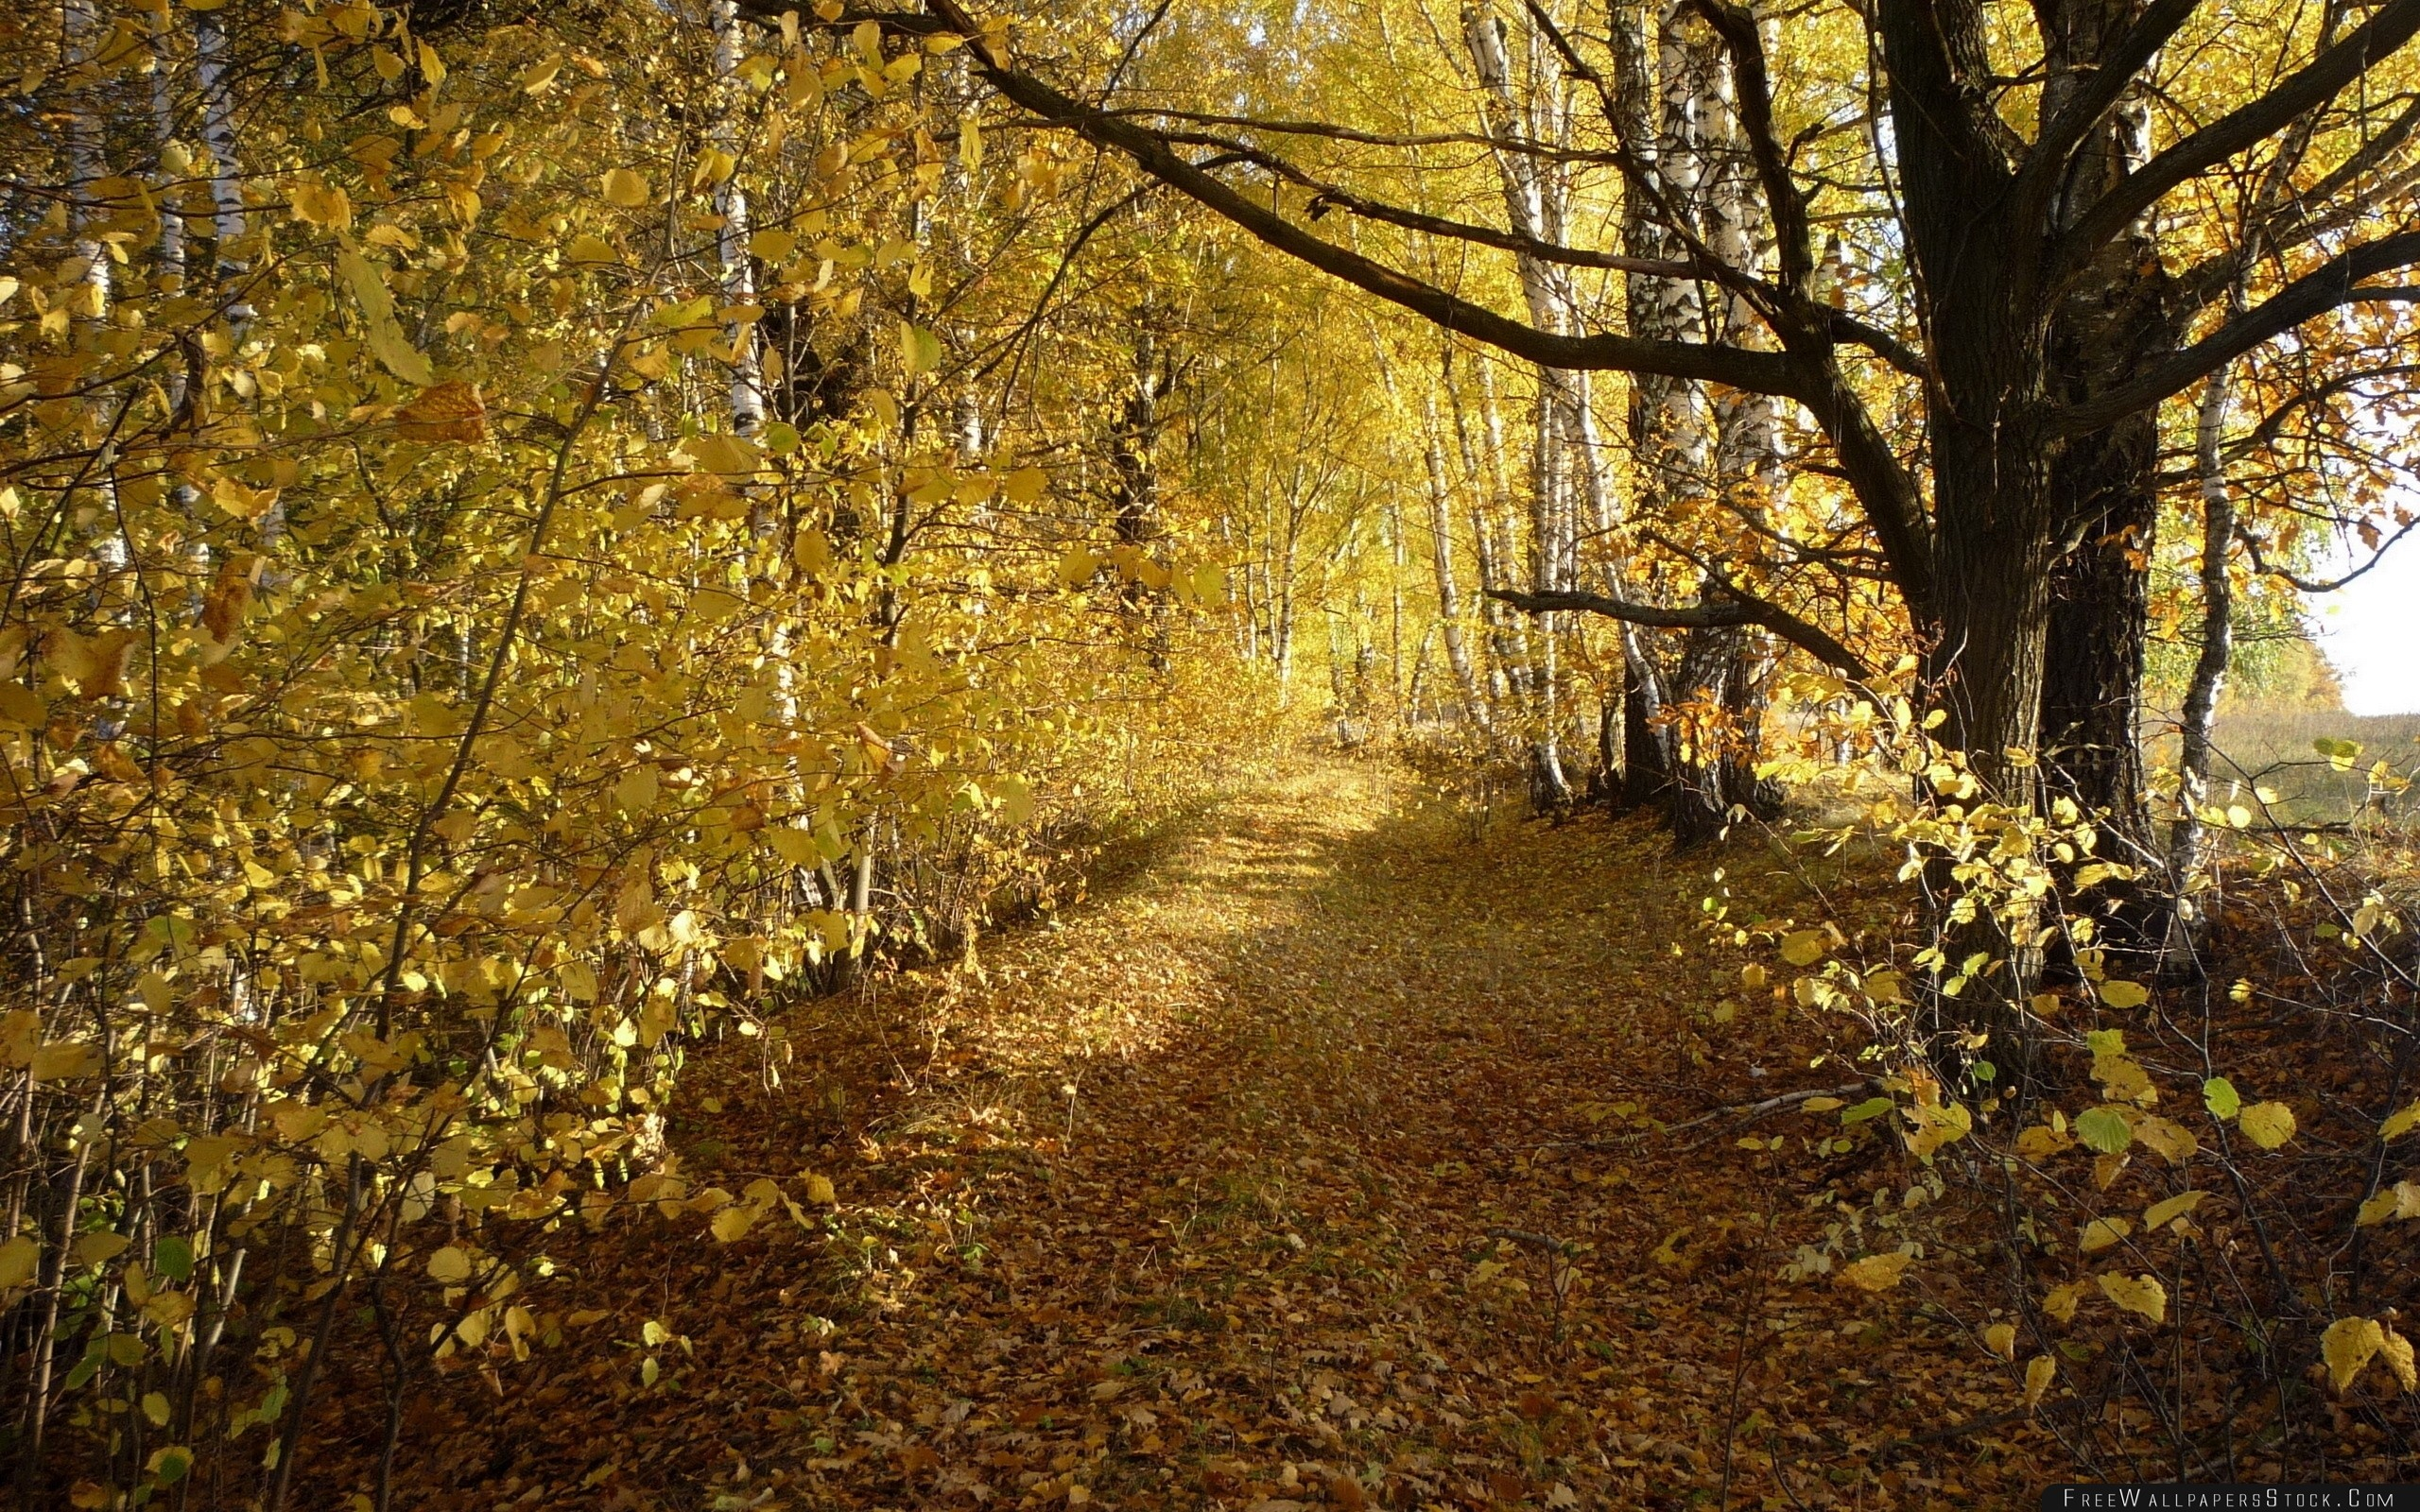 Download Free Wallpaper Wood Trees Leaf Fall Autumn Birches